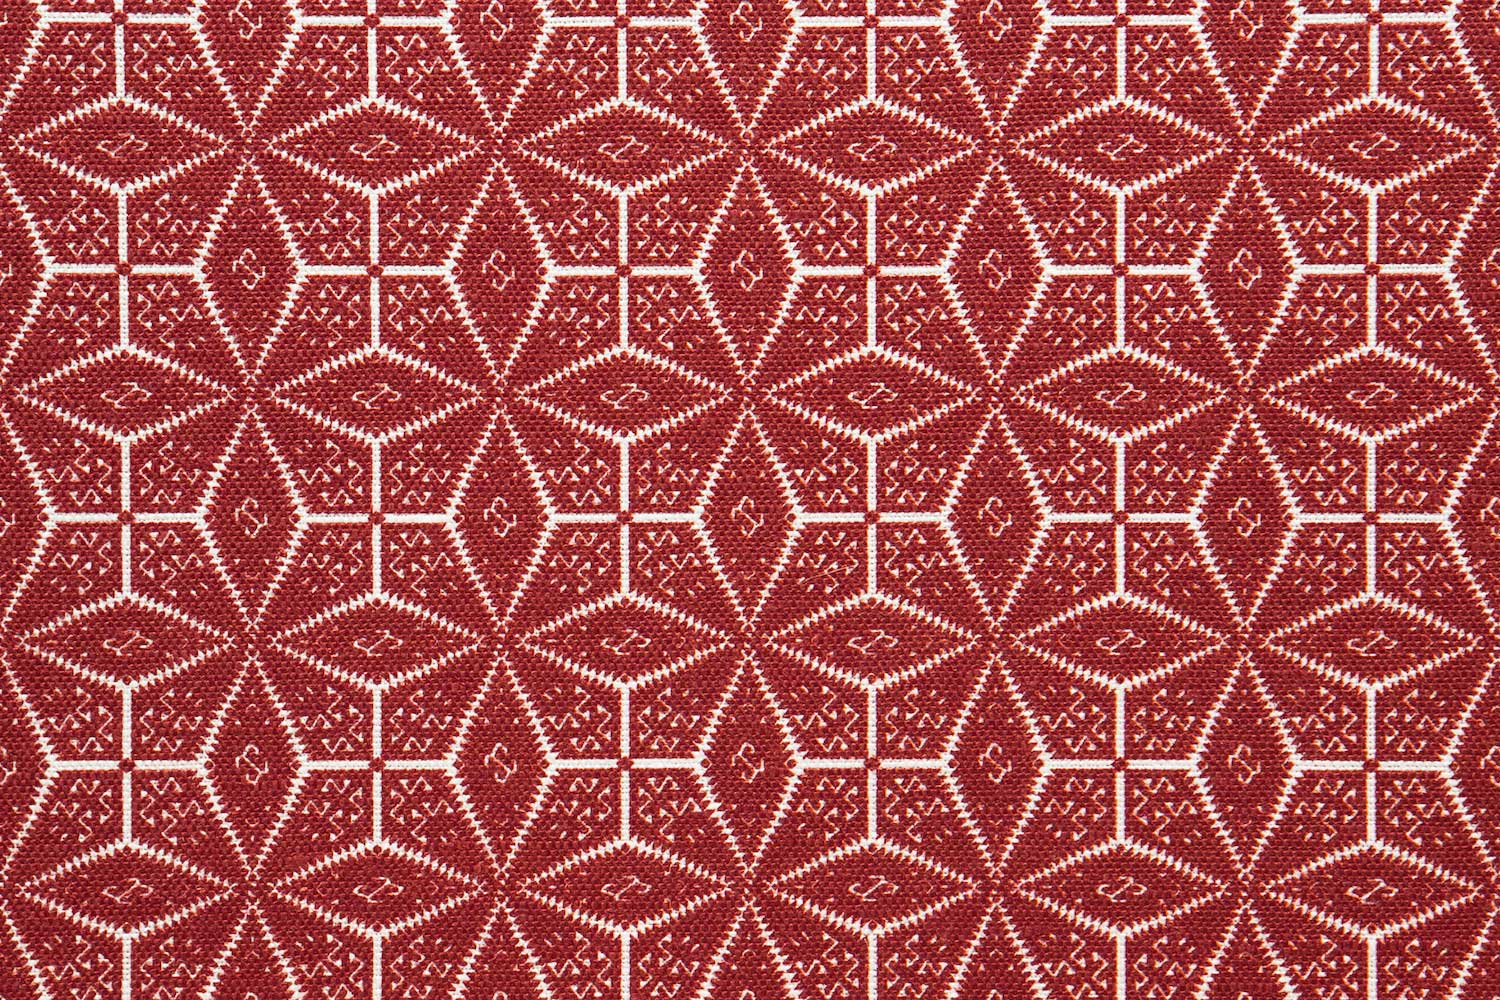 Abbot Atlas naxos red fabric linen printed